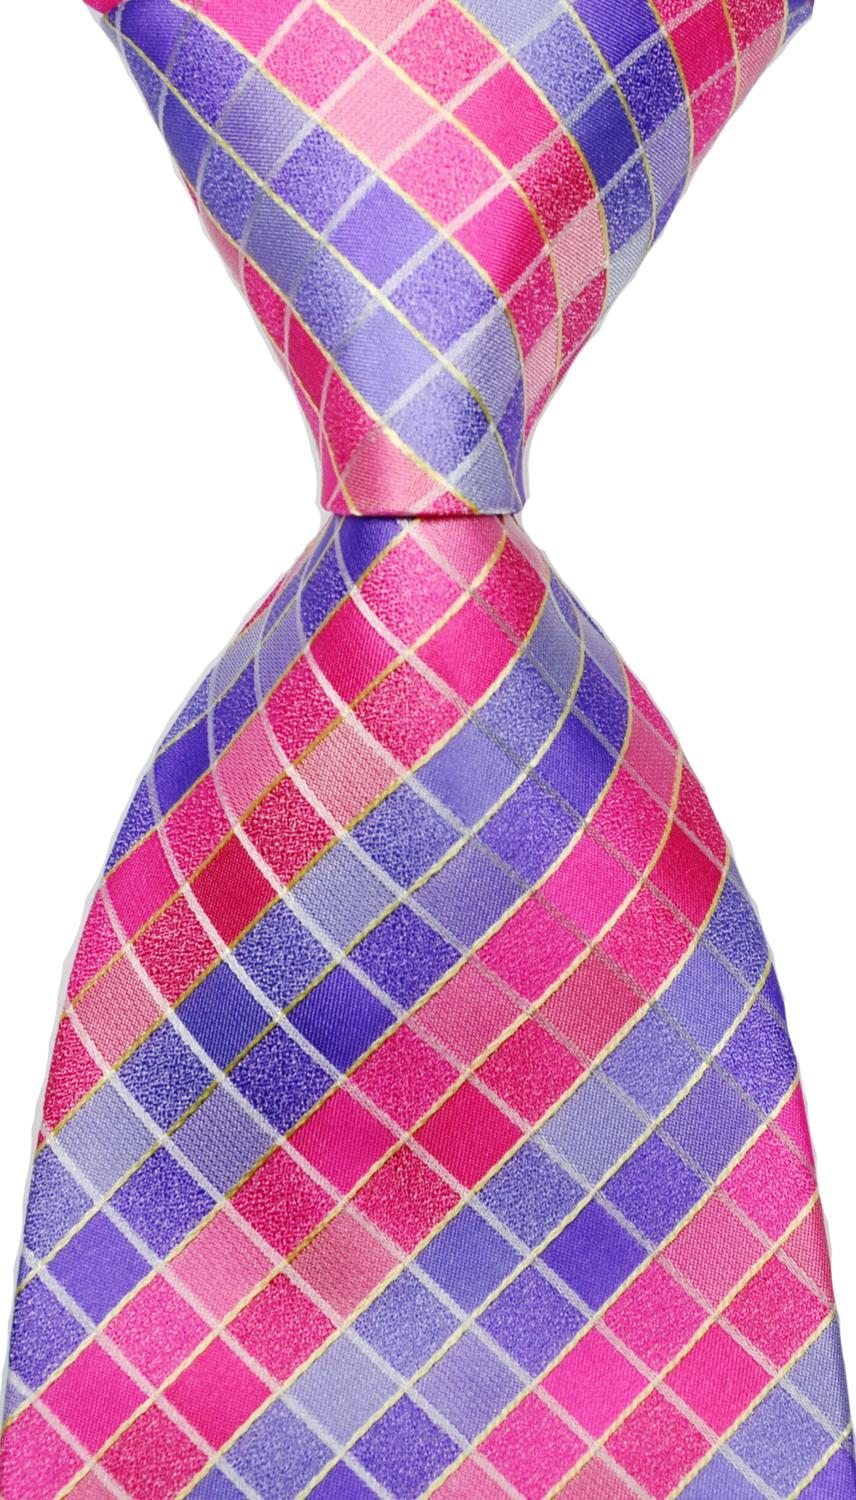 New Classic Checks Blue Black JACQUARD WOVEN 100/% Silk Men/'s Tie Necktie